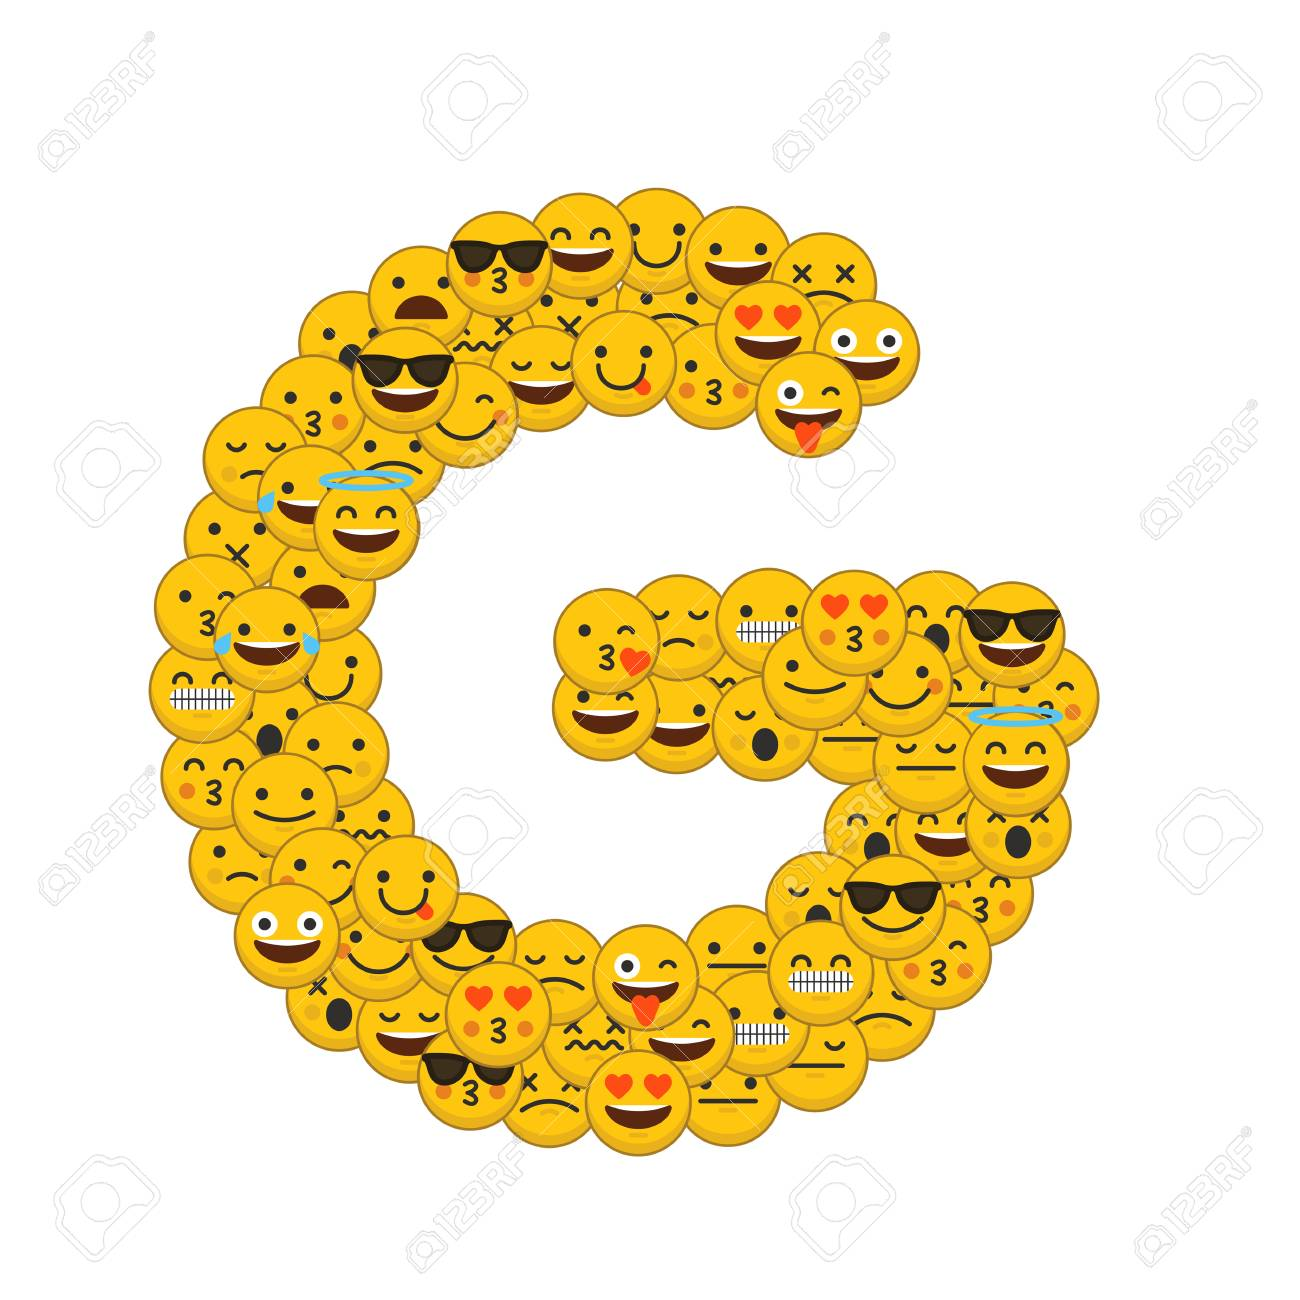 emoji smiley characters capital letter g stock photo 93223164